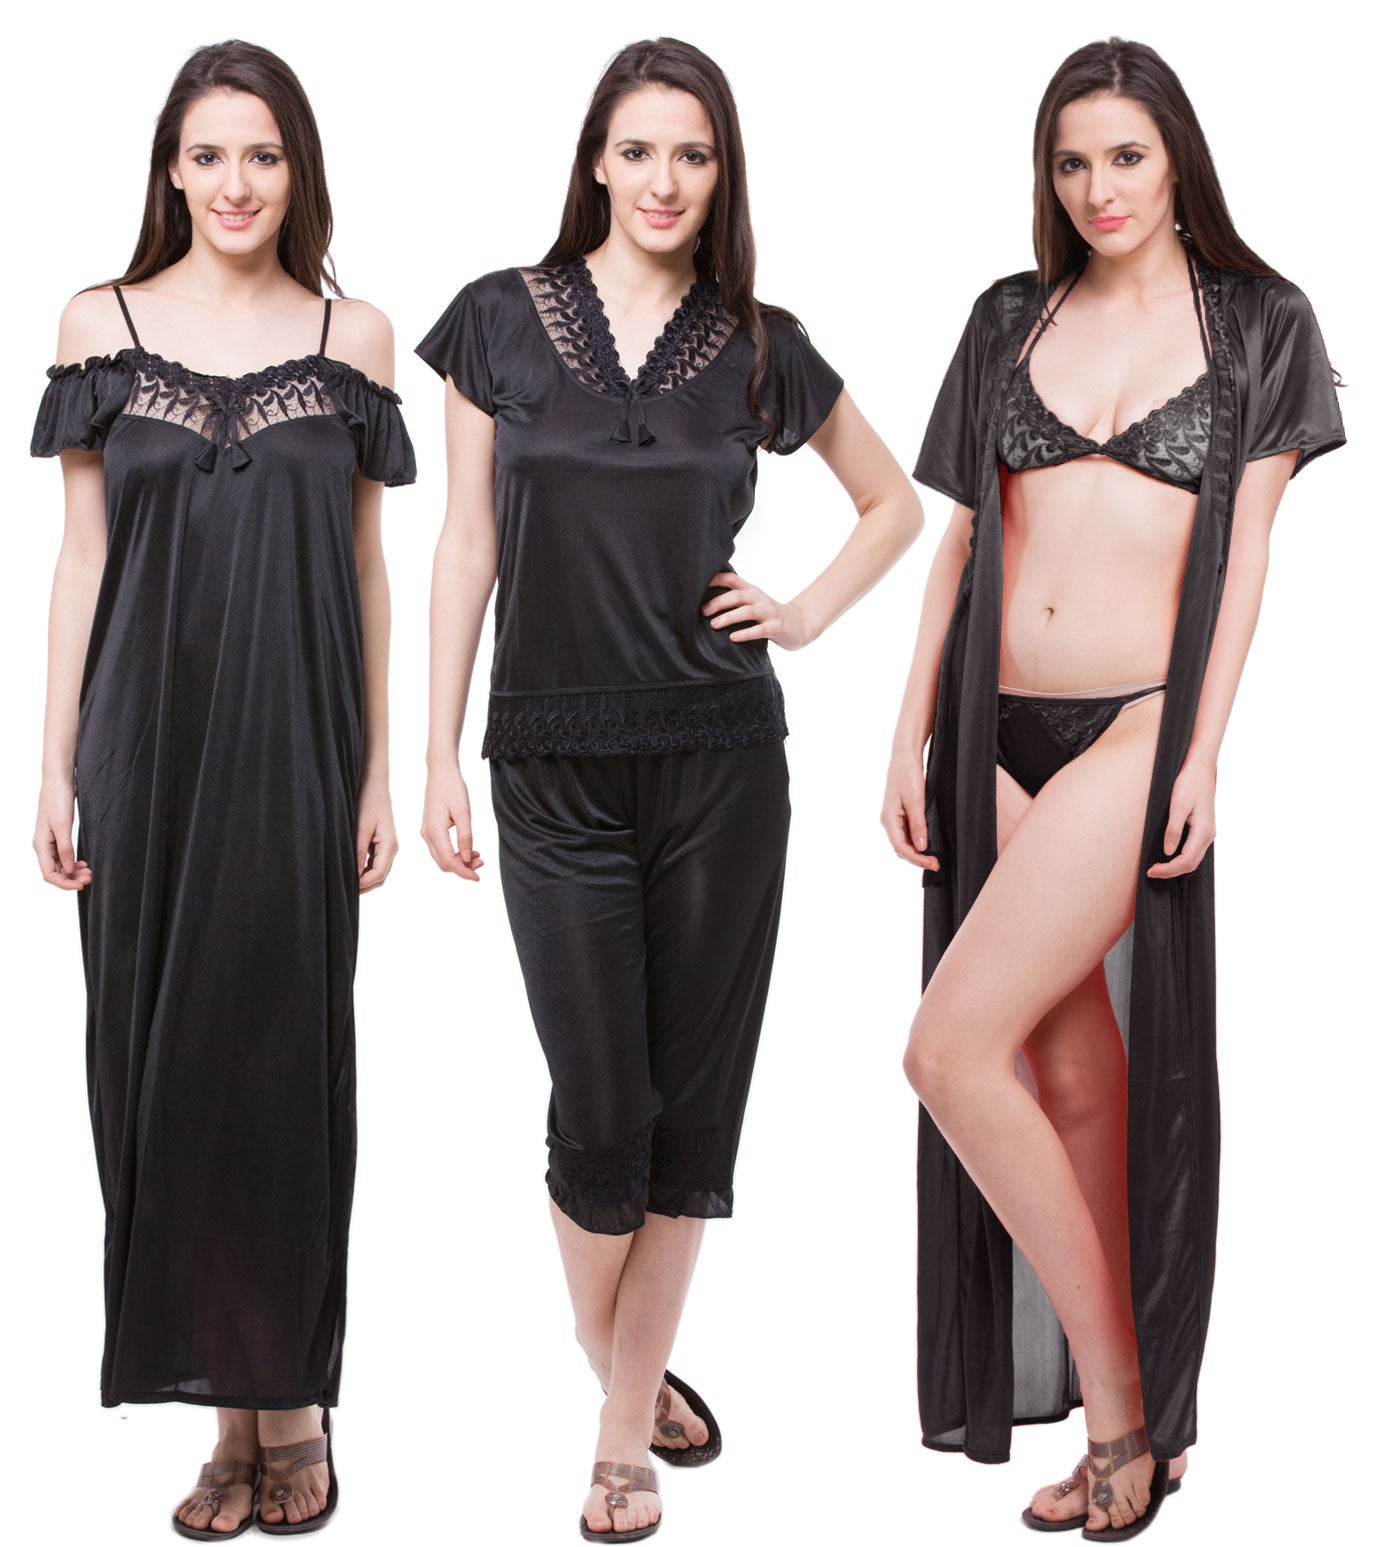 Fasense  Satin 6 PCs Set Of Nighty, Wrap Gown, Top, Capry, Bra & Thong, DP115 - fasensestore